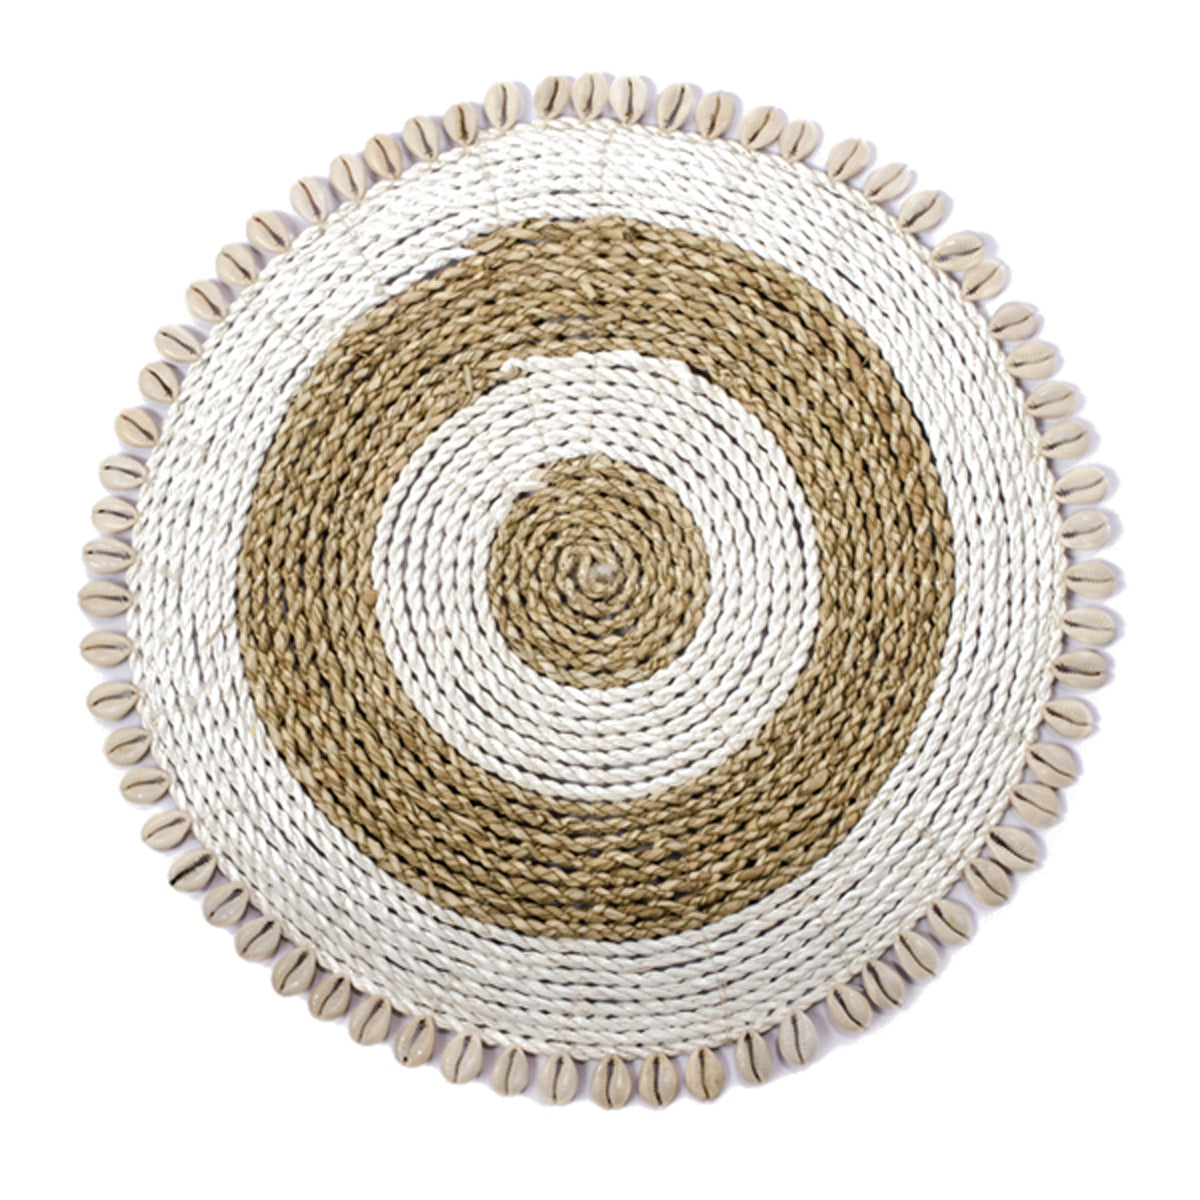 SHL187-8 NATURAL RAFFIA PLACEMAT WITH SHELL FRINGE